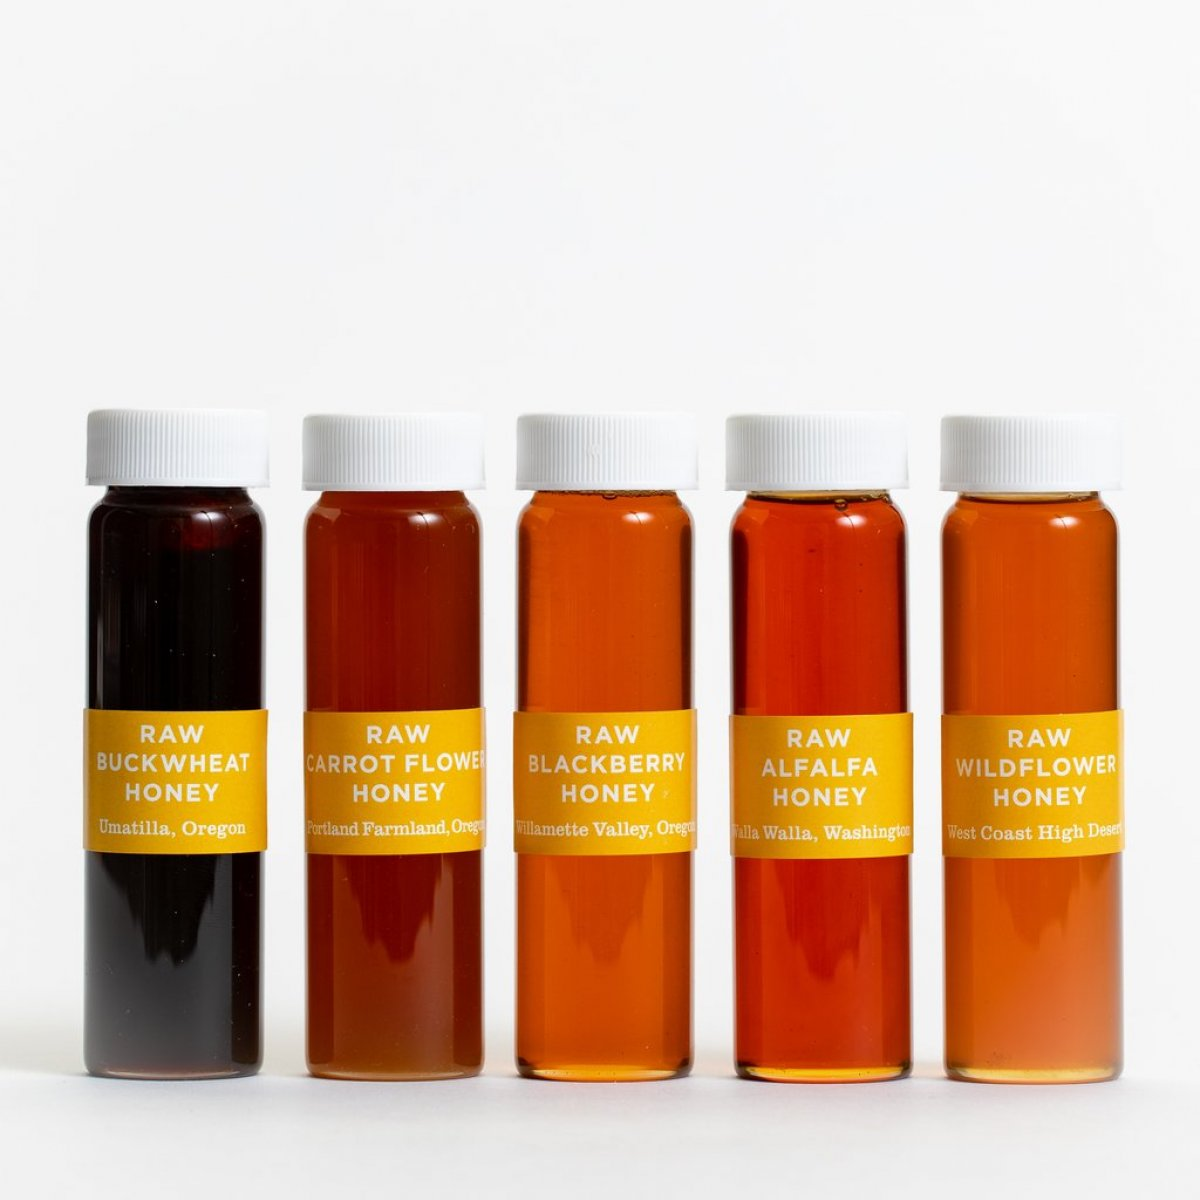 5-vial raw honey collection